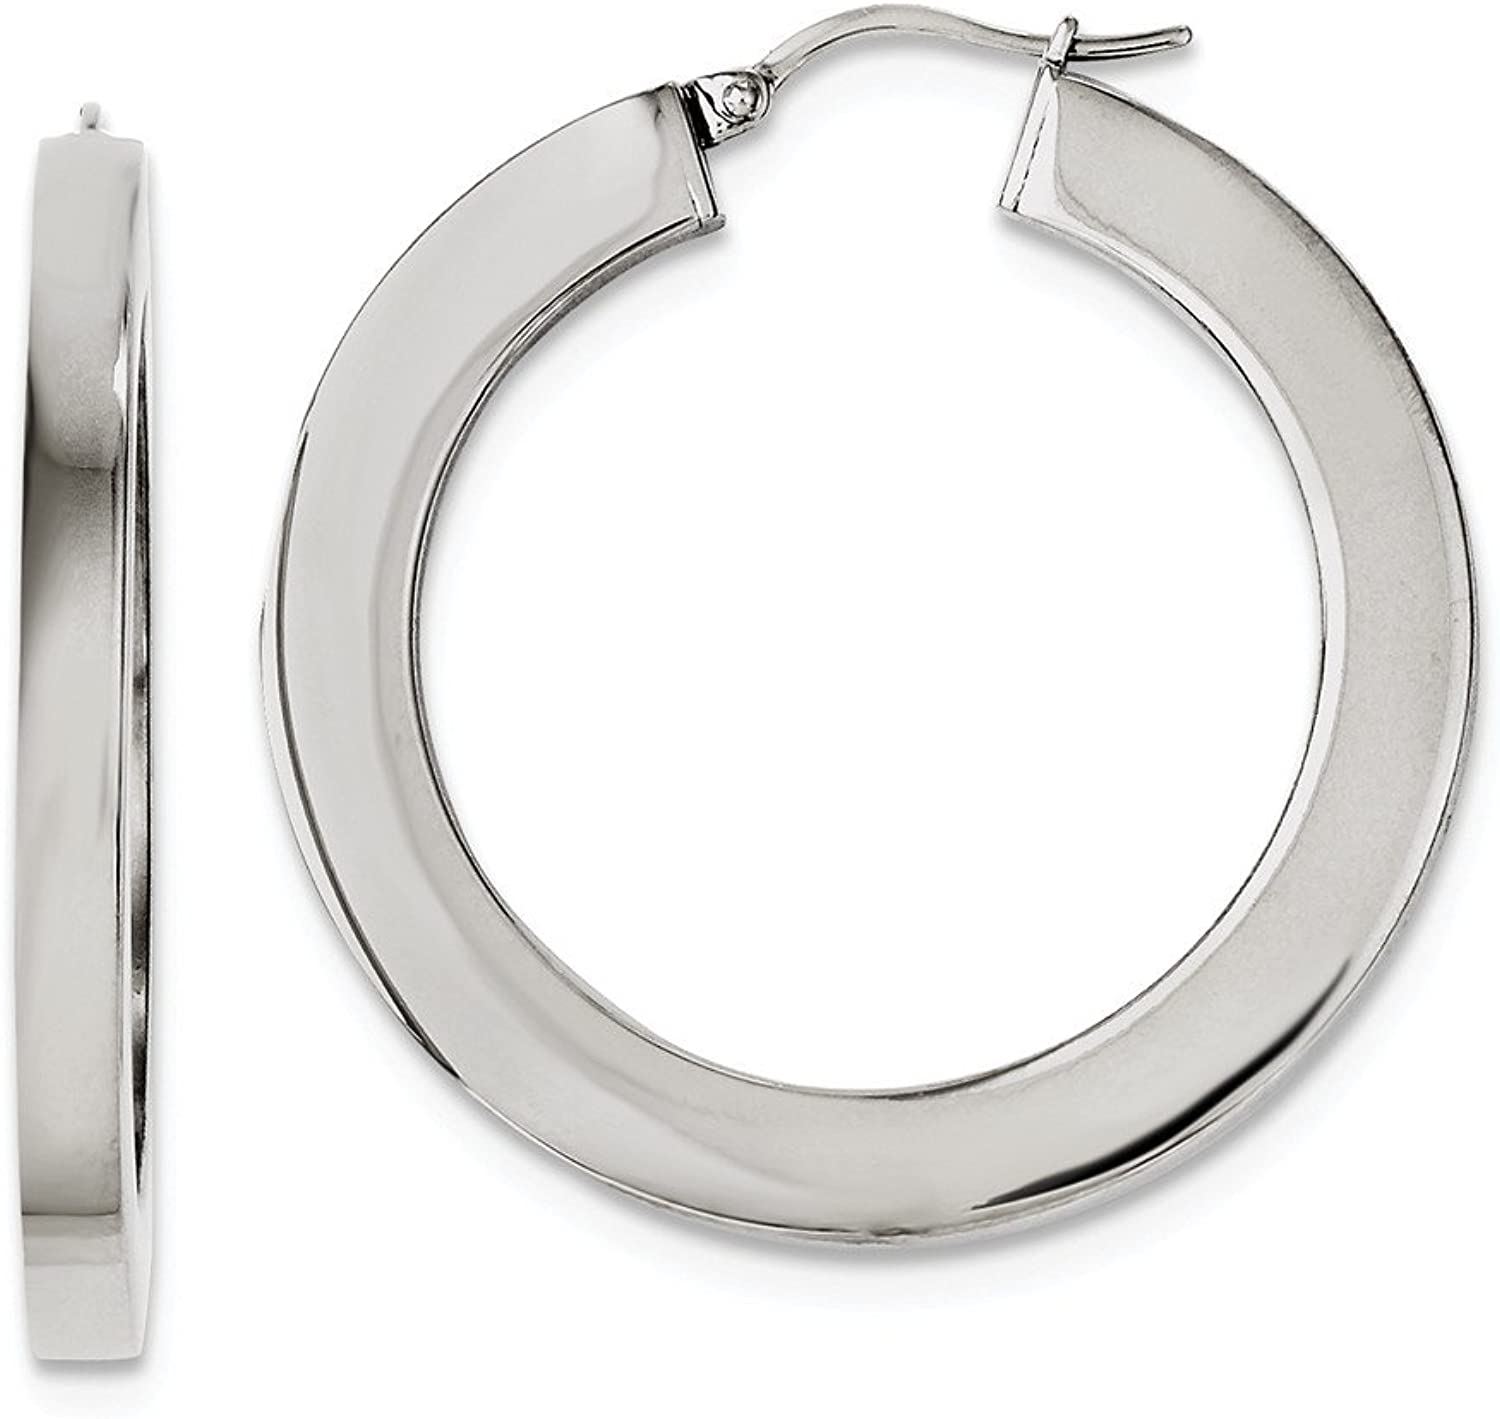 Beautiful Stainless Steel Polished Hollow 30mm Flat Hoop Earrings